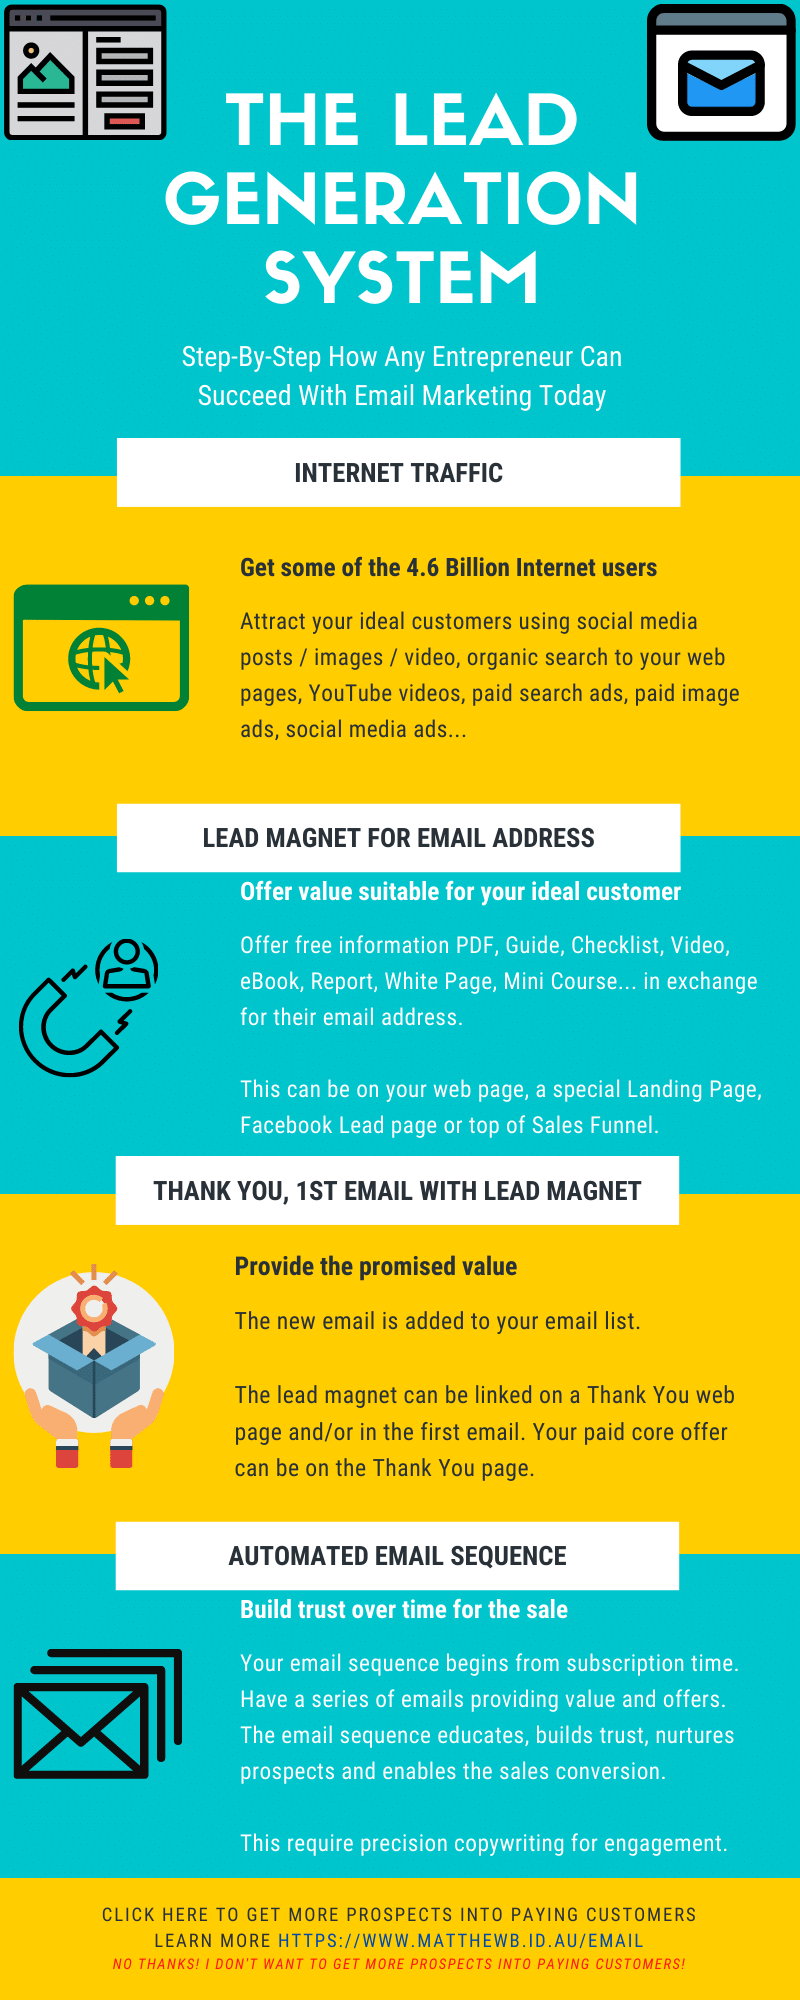 What Every Entrepreneur Needs To Know About Lead Generation and Email Marketing - Infographic